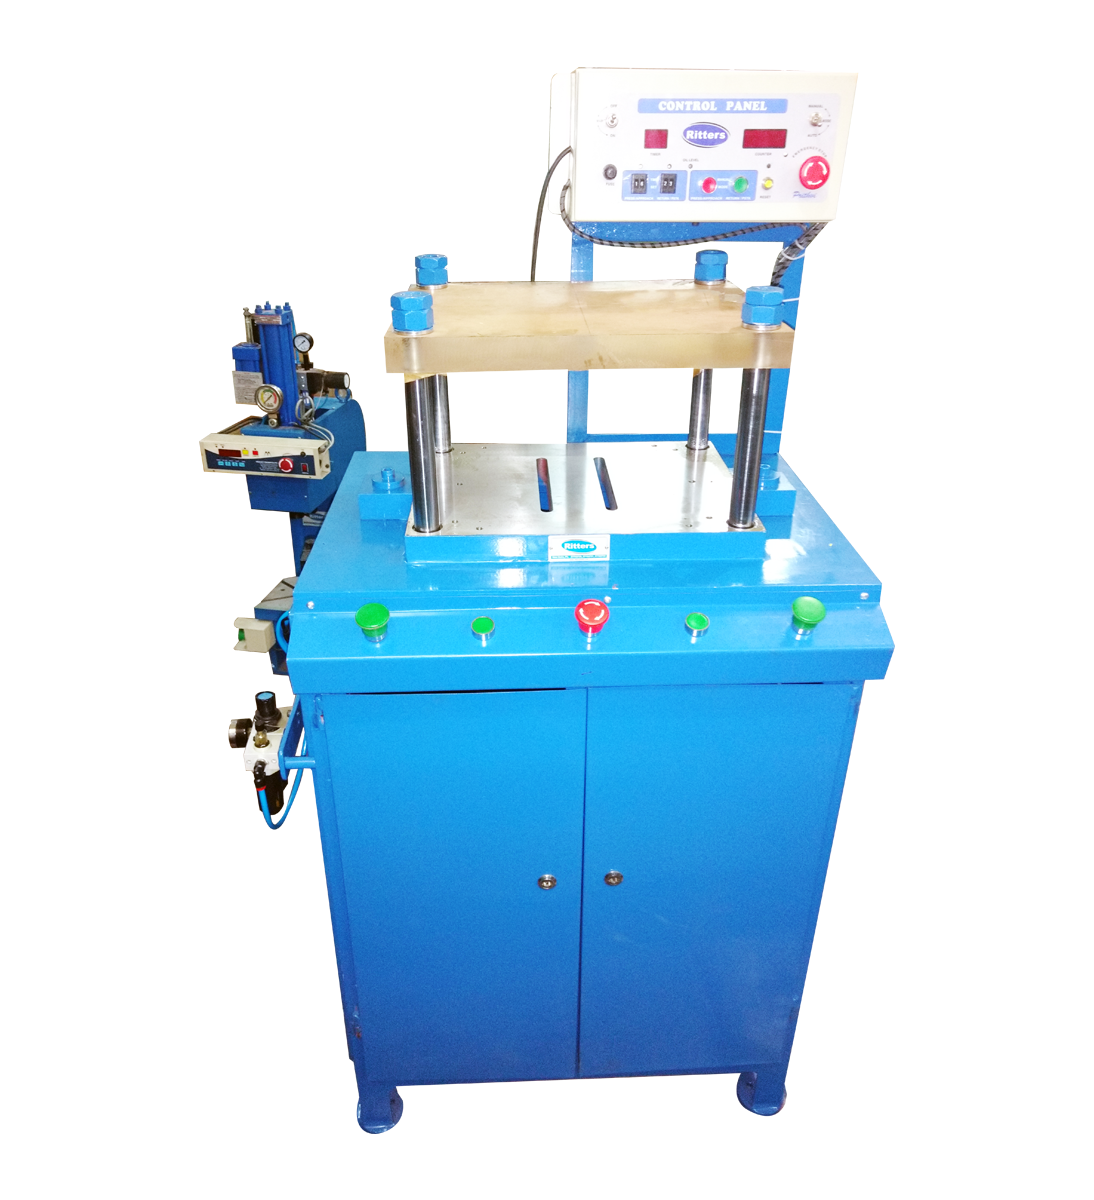 ritters Pneumatic Press , Capacity 500 Kgf  for PCB Testing